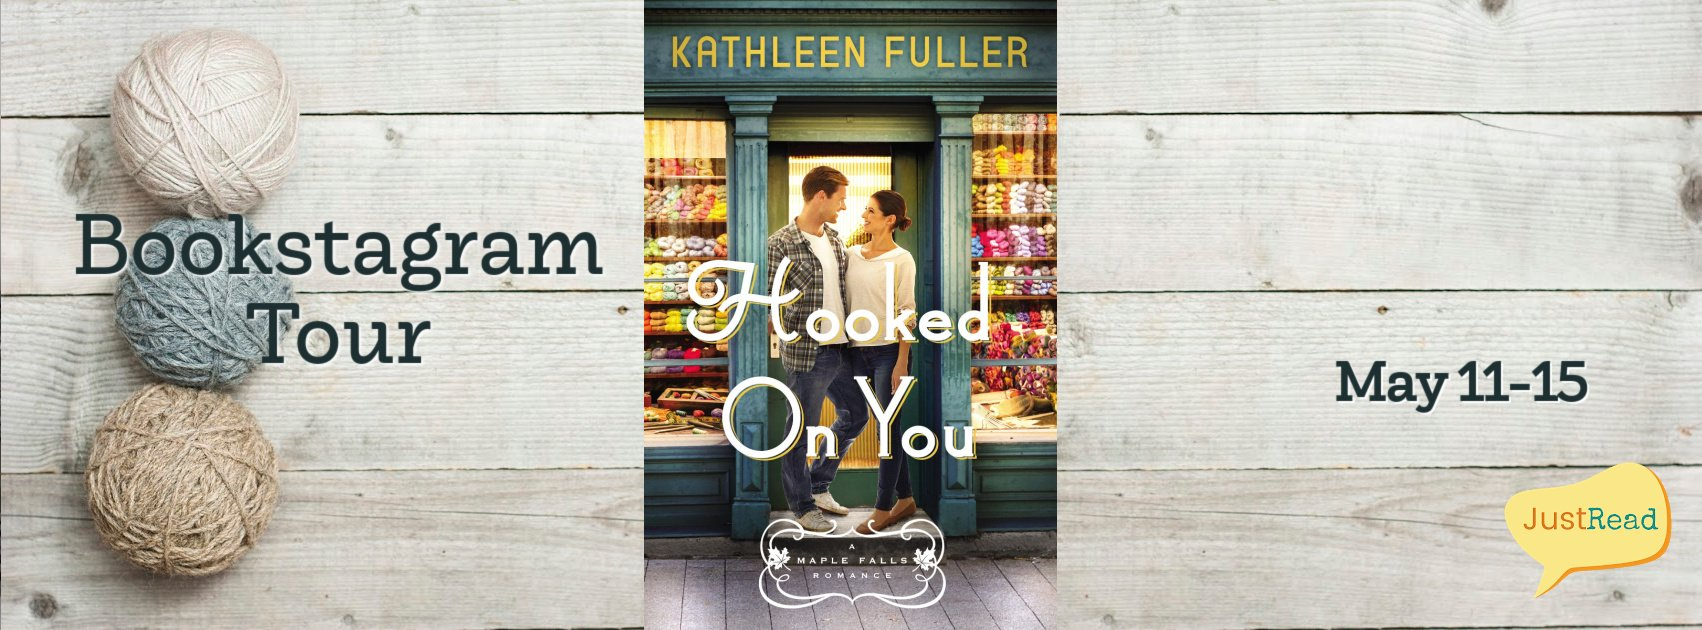 Hooked On You JustRead Bookstagram Tour